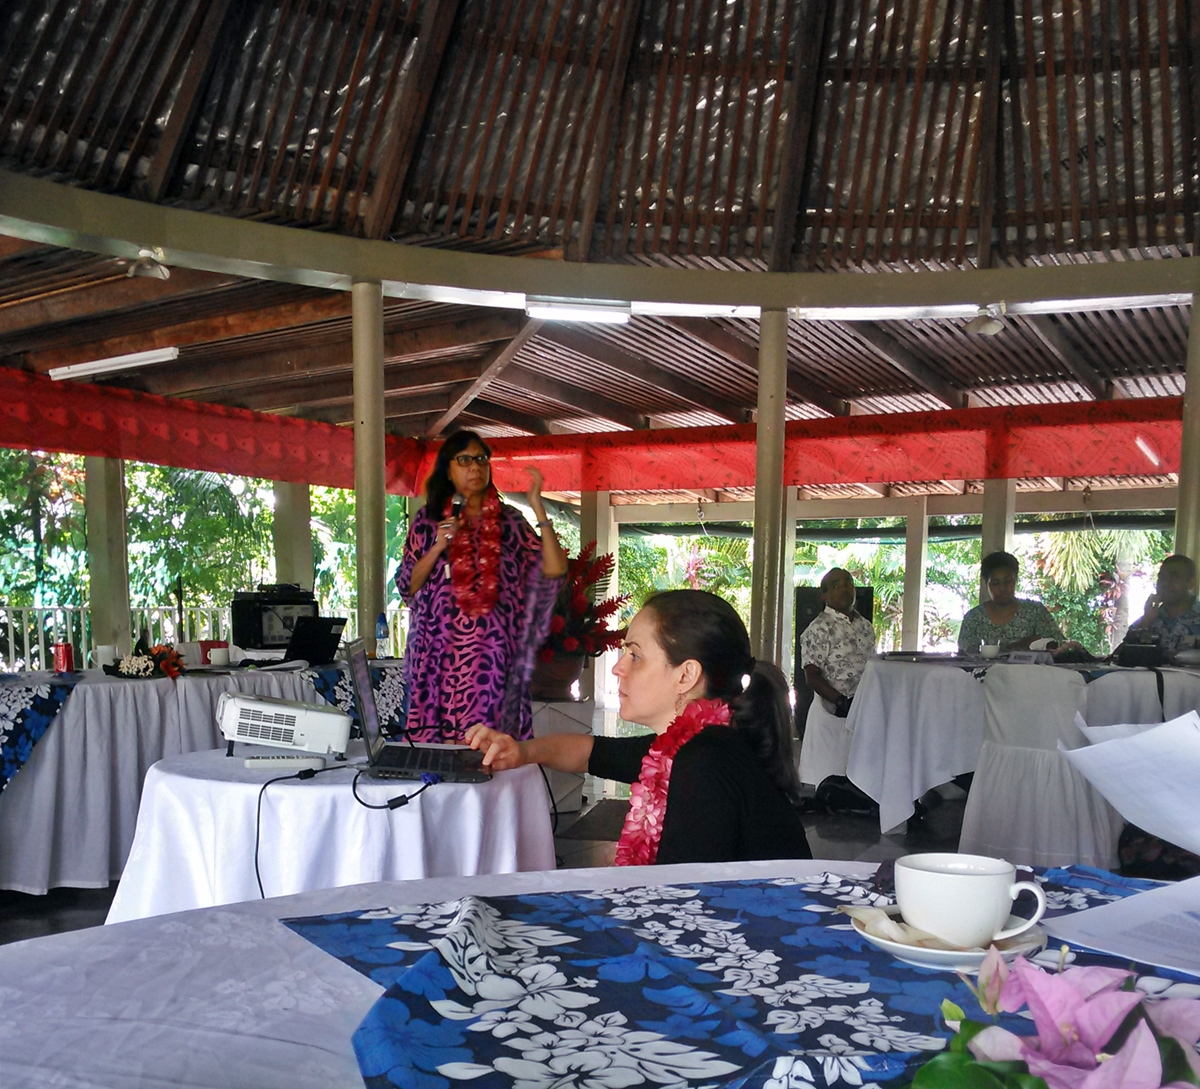 UNDESA Officer, Sonia Smallacombe at the Indigenous Peoples Workshop